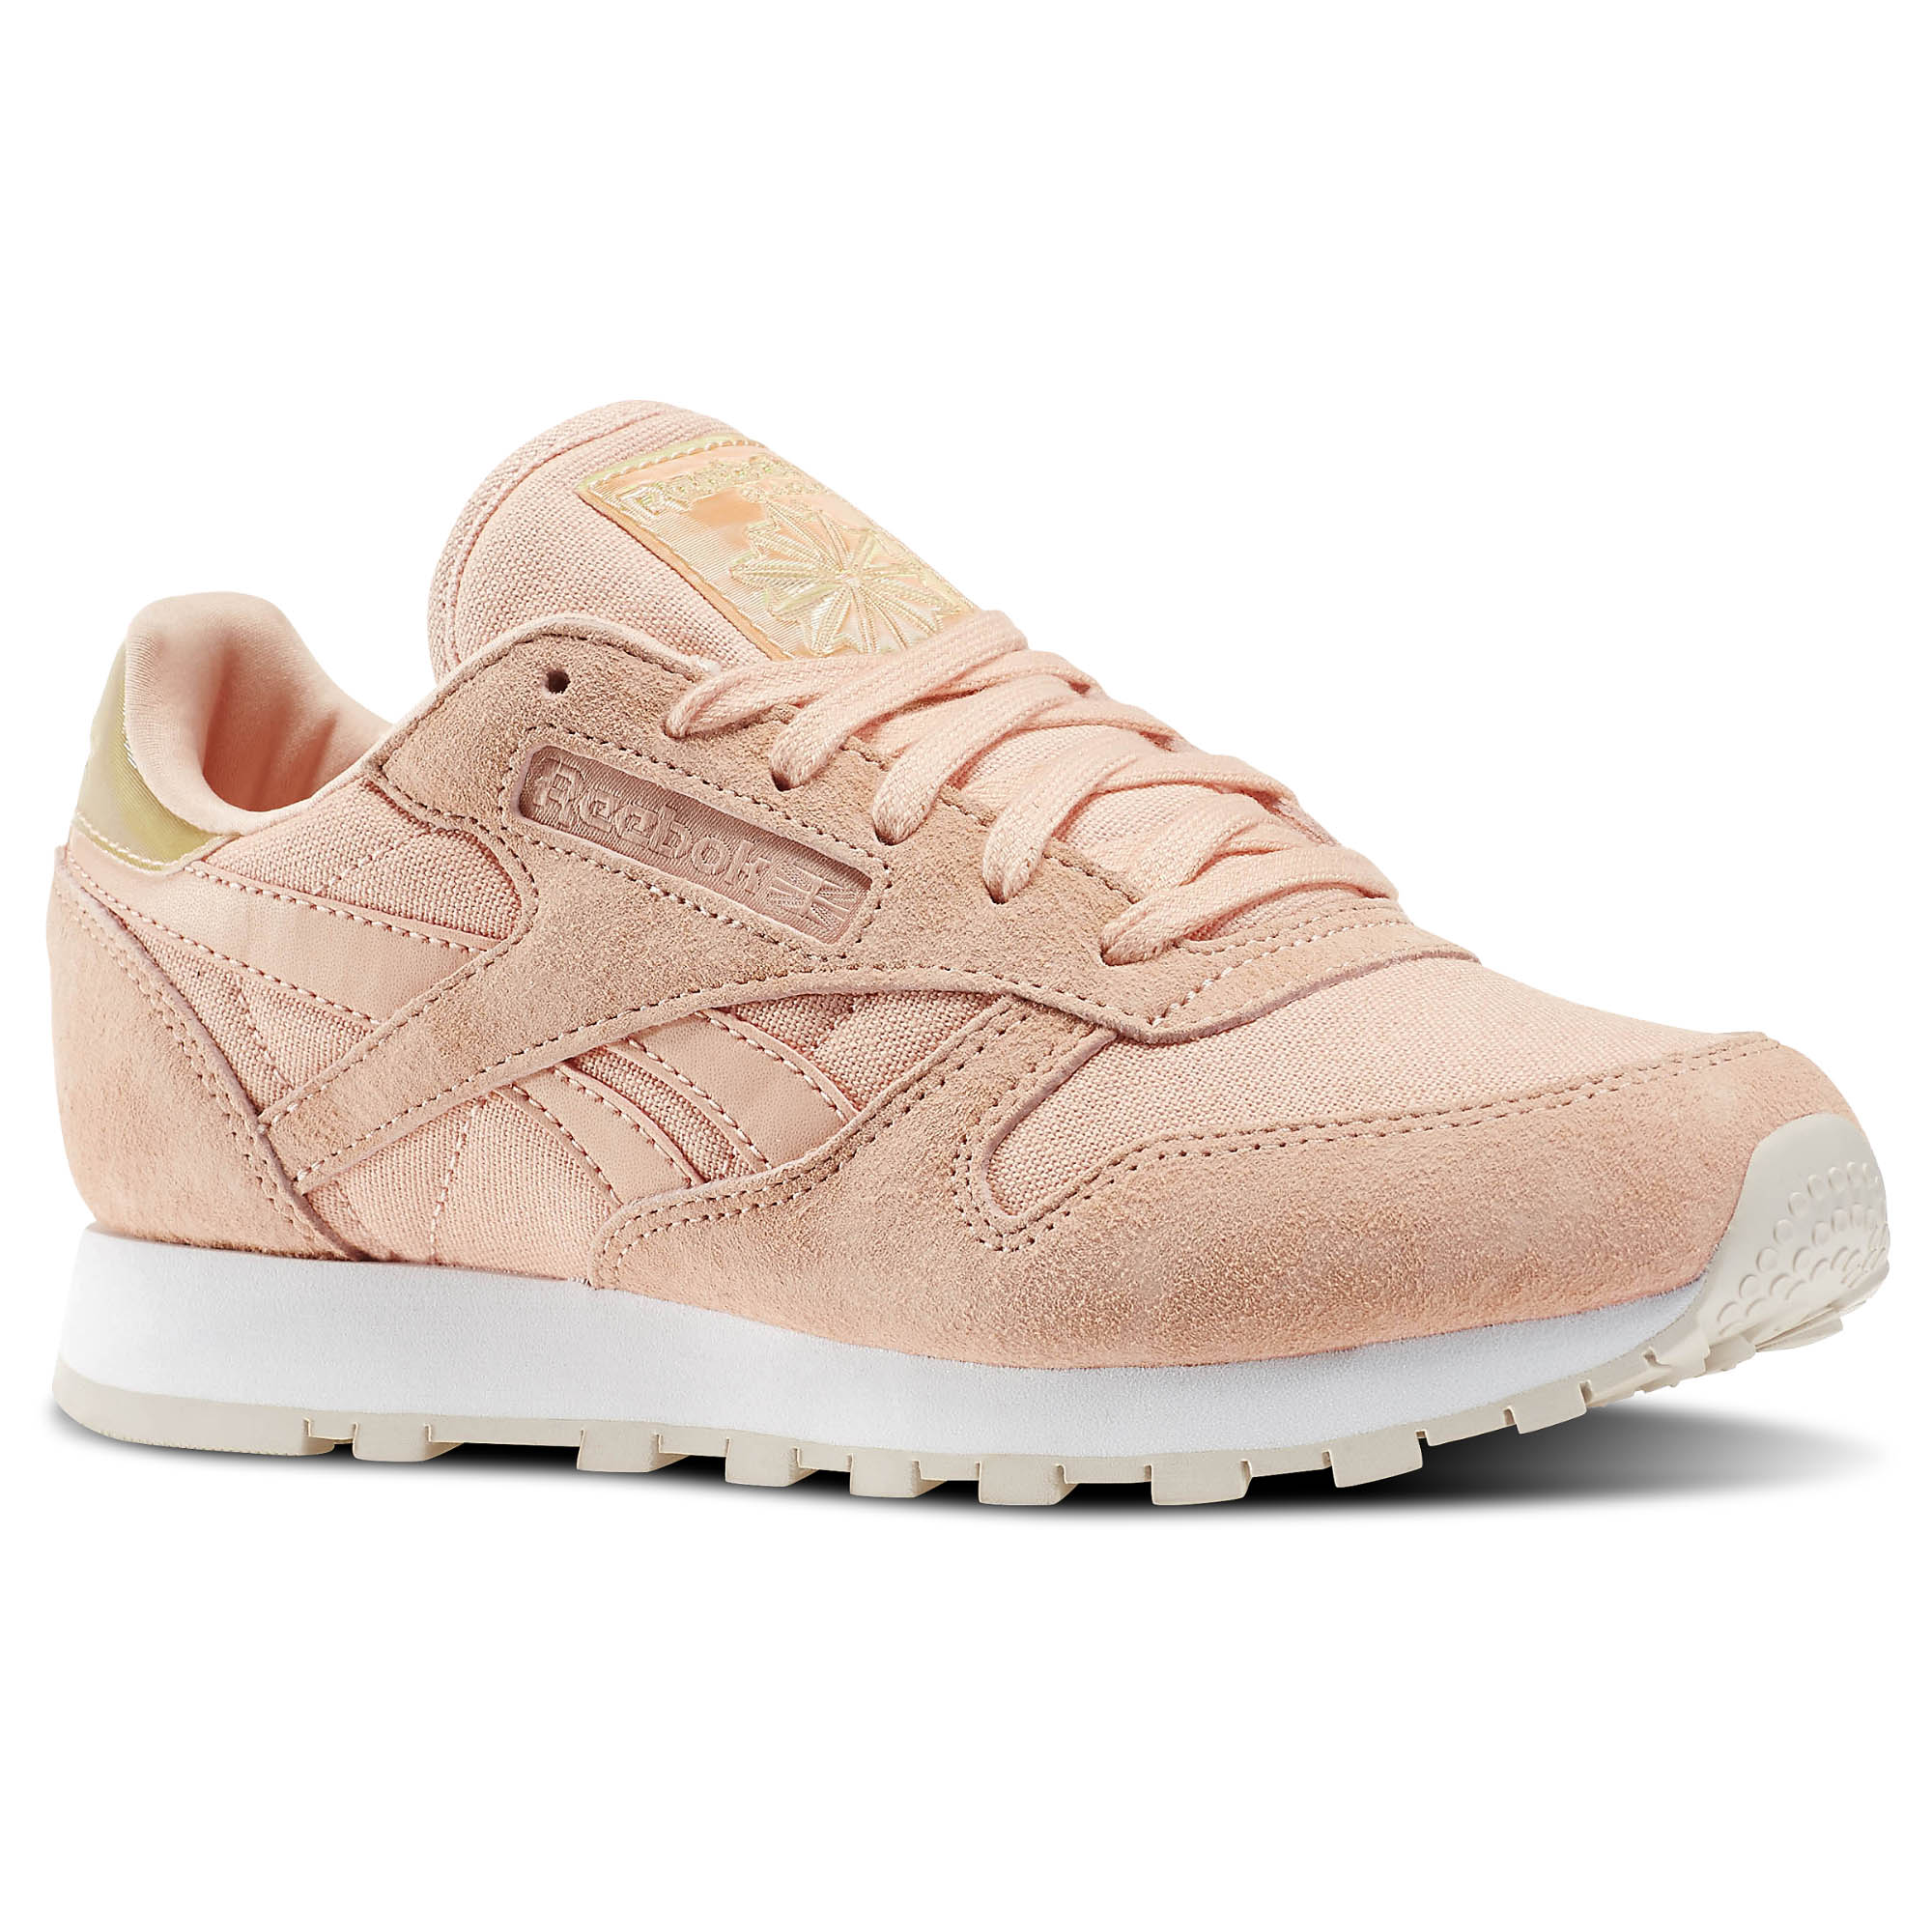 f9b459a620 Reebok Classic Leather Transform - Desert Stone | Reebok MLT